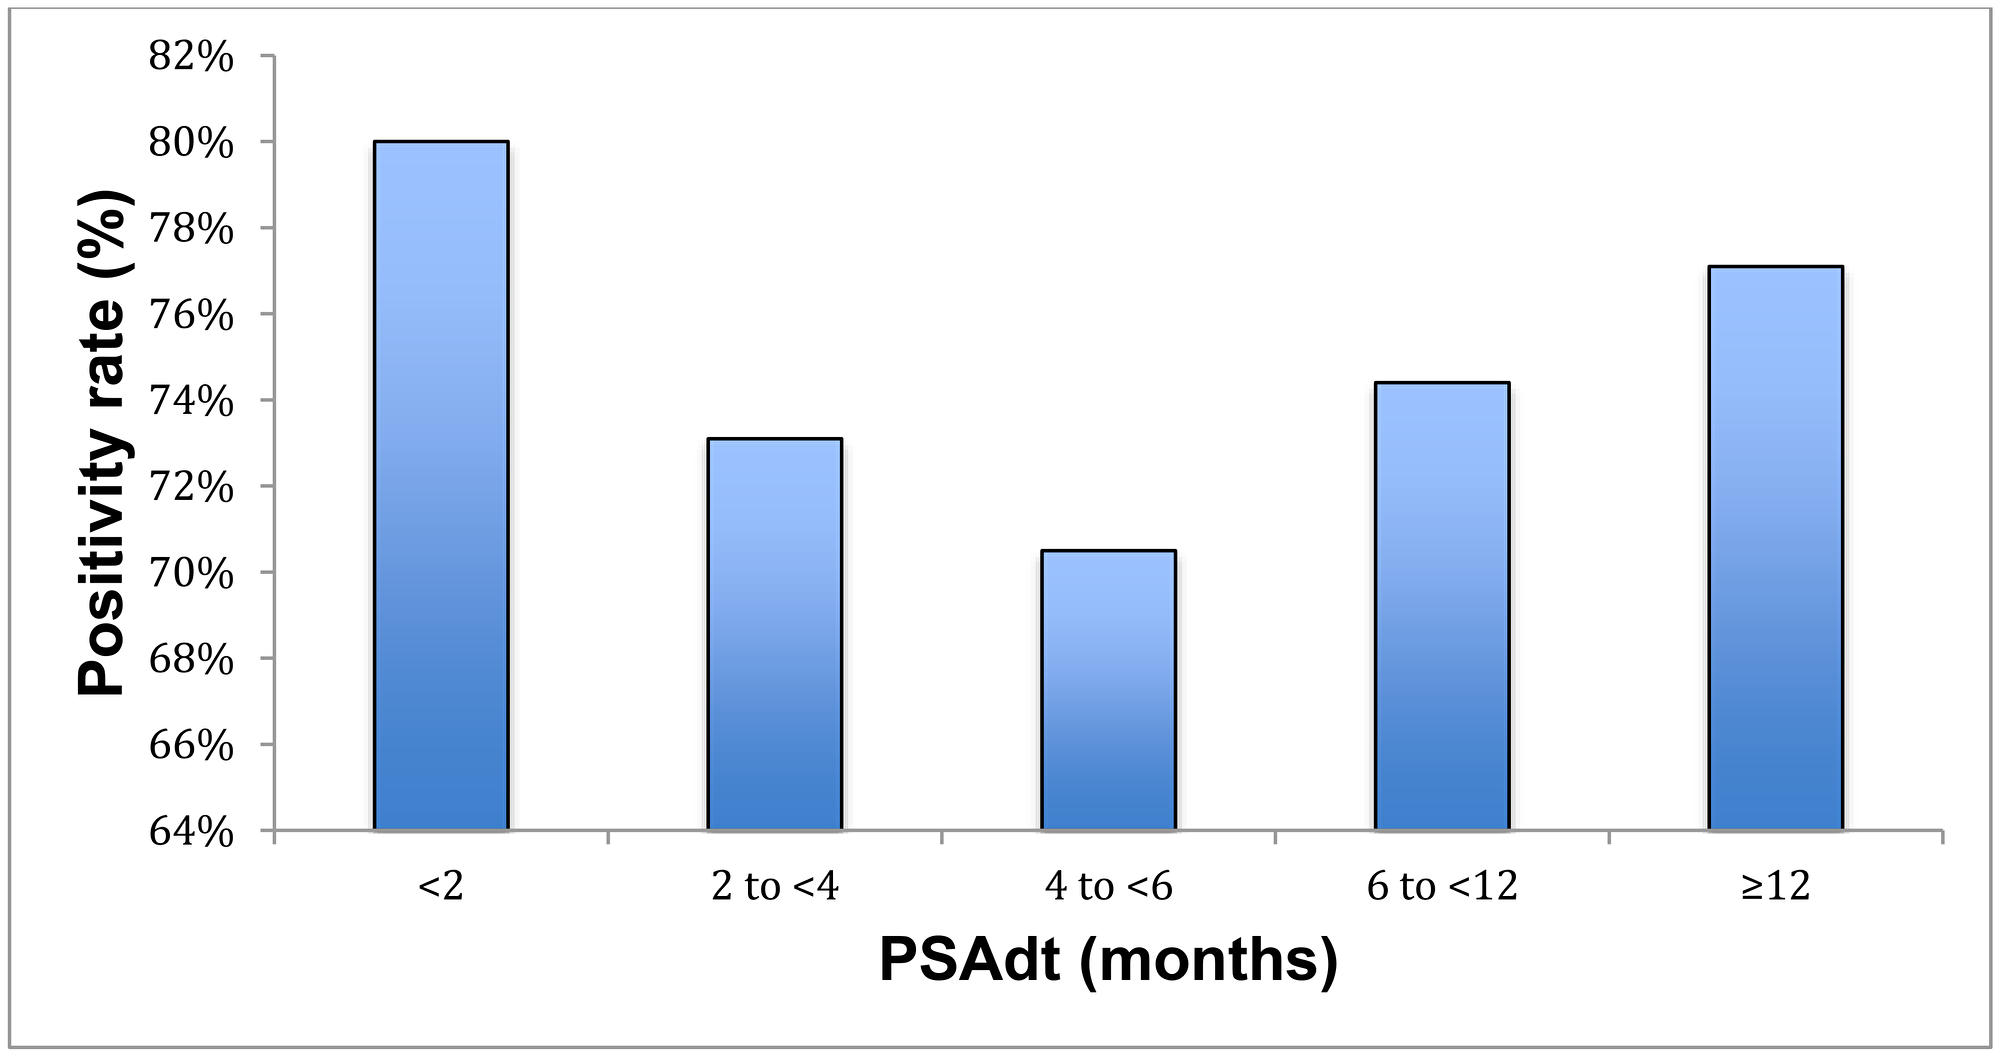 Positivity rate with respect to PSAdt.